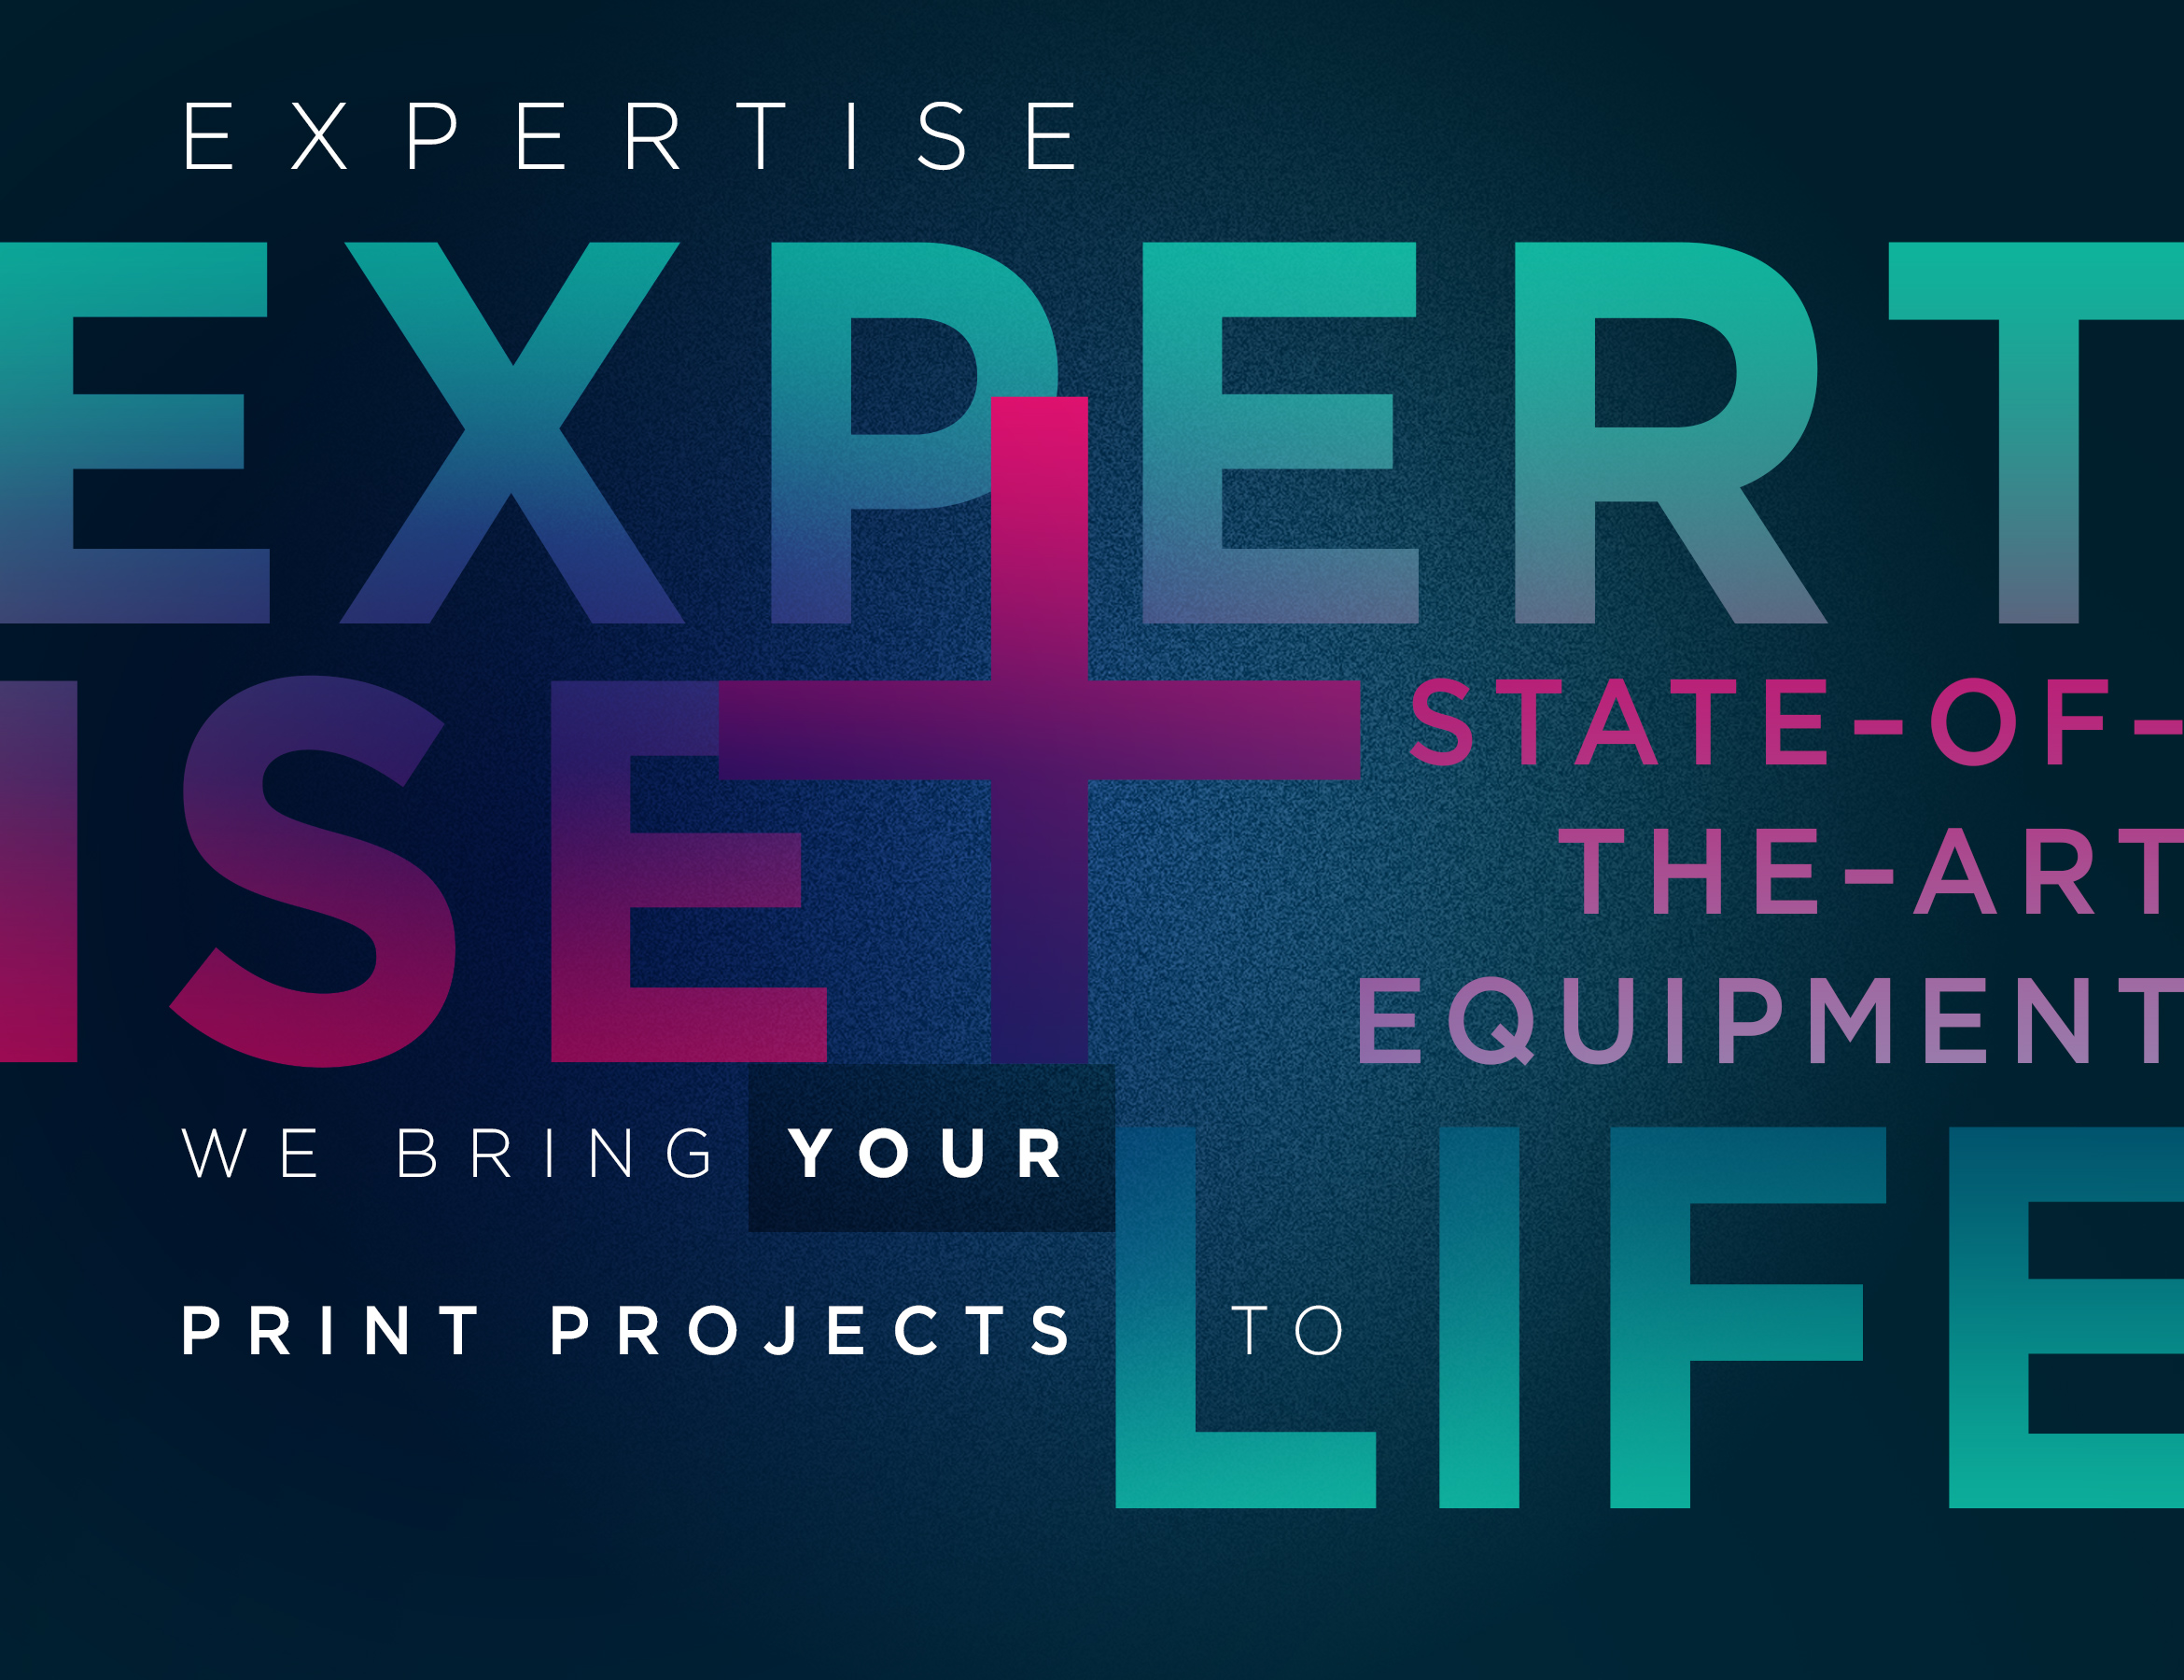 Expertise + State-of-the-Art Equipment